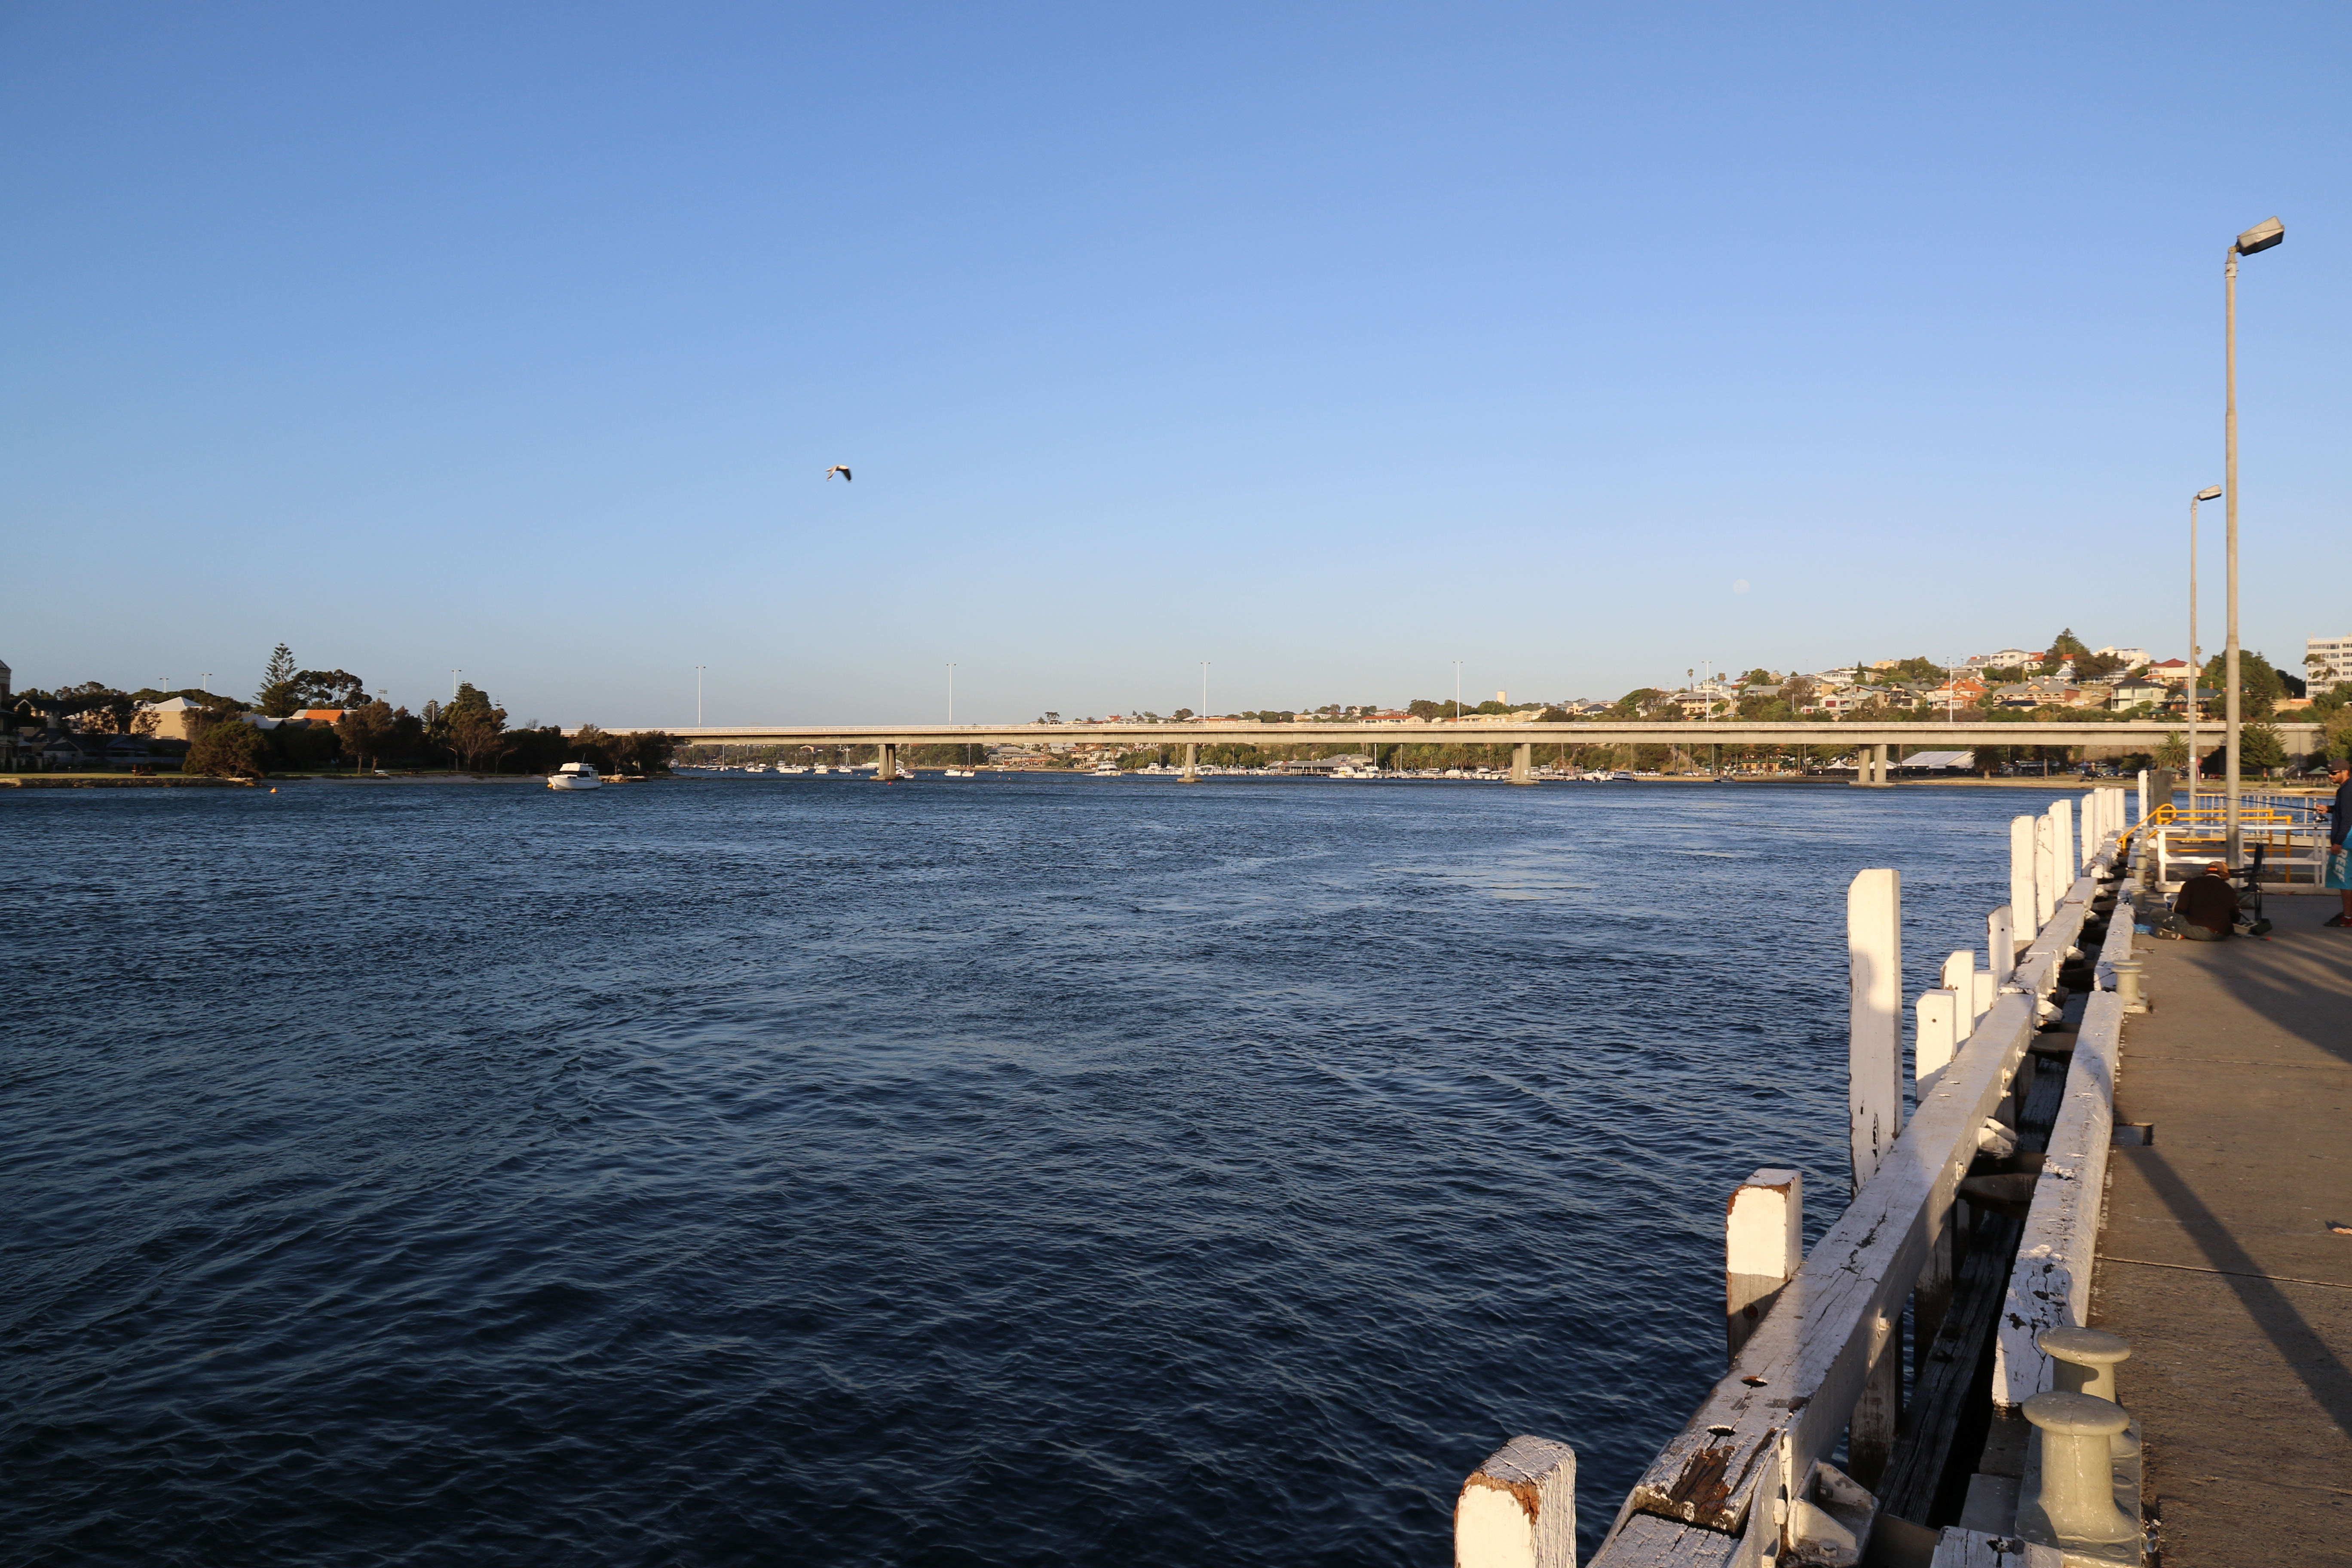 Swan River - View upstream from East Street Jetty - Fremantle WA